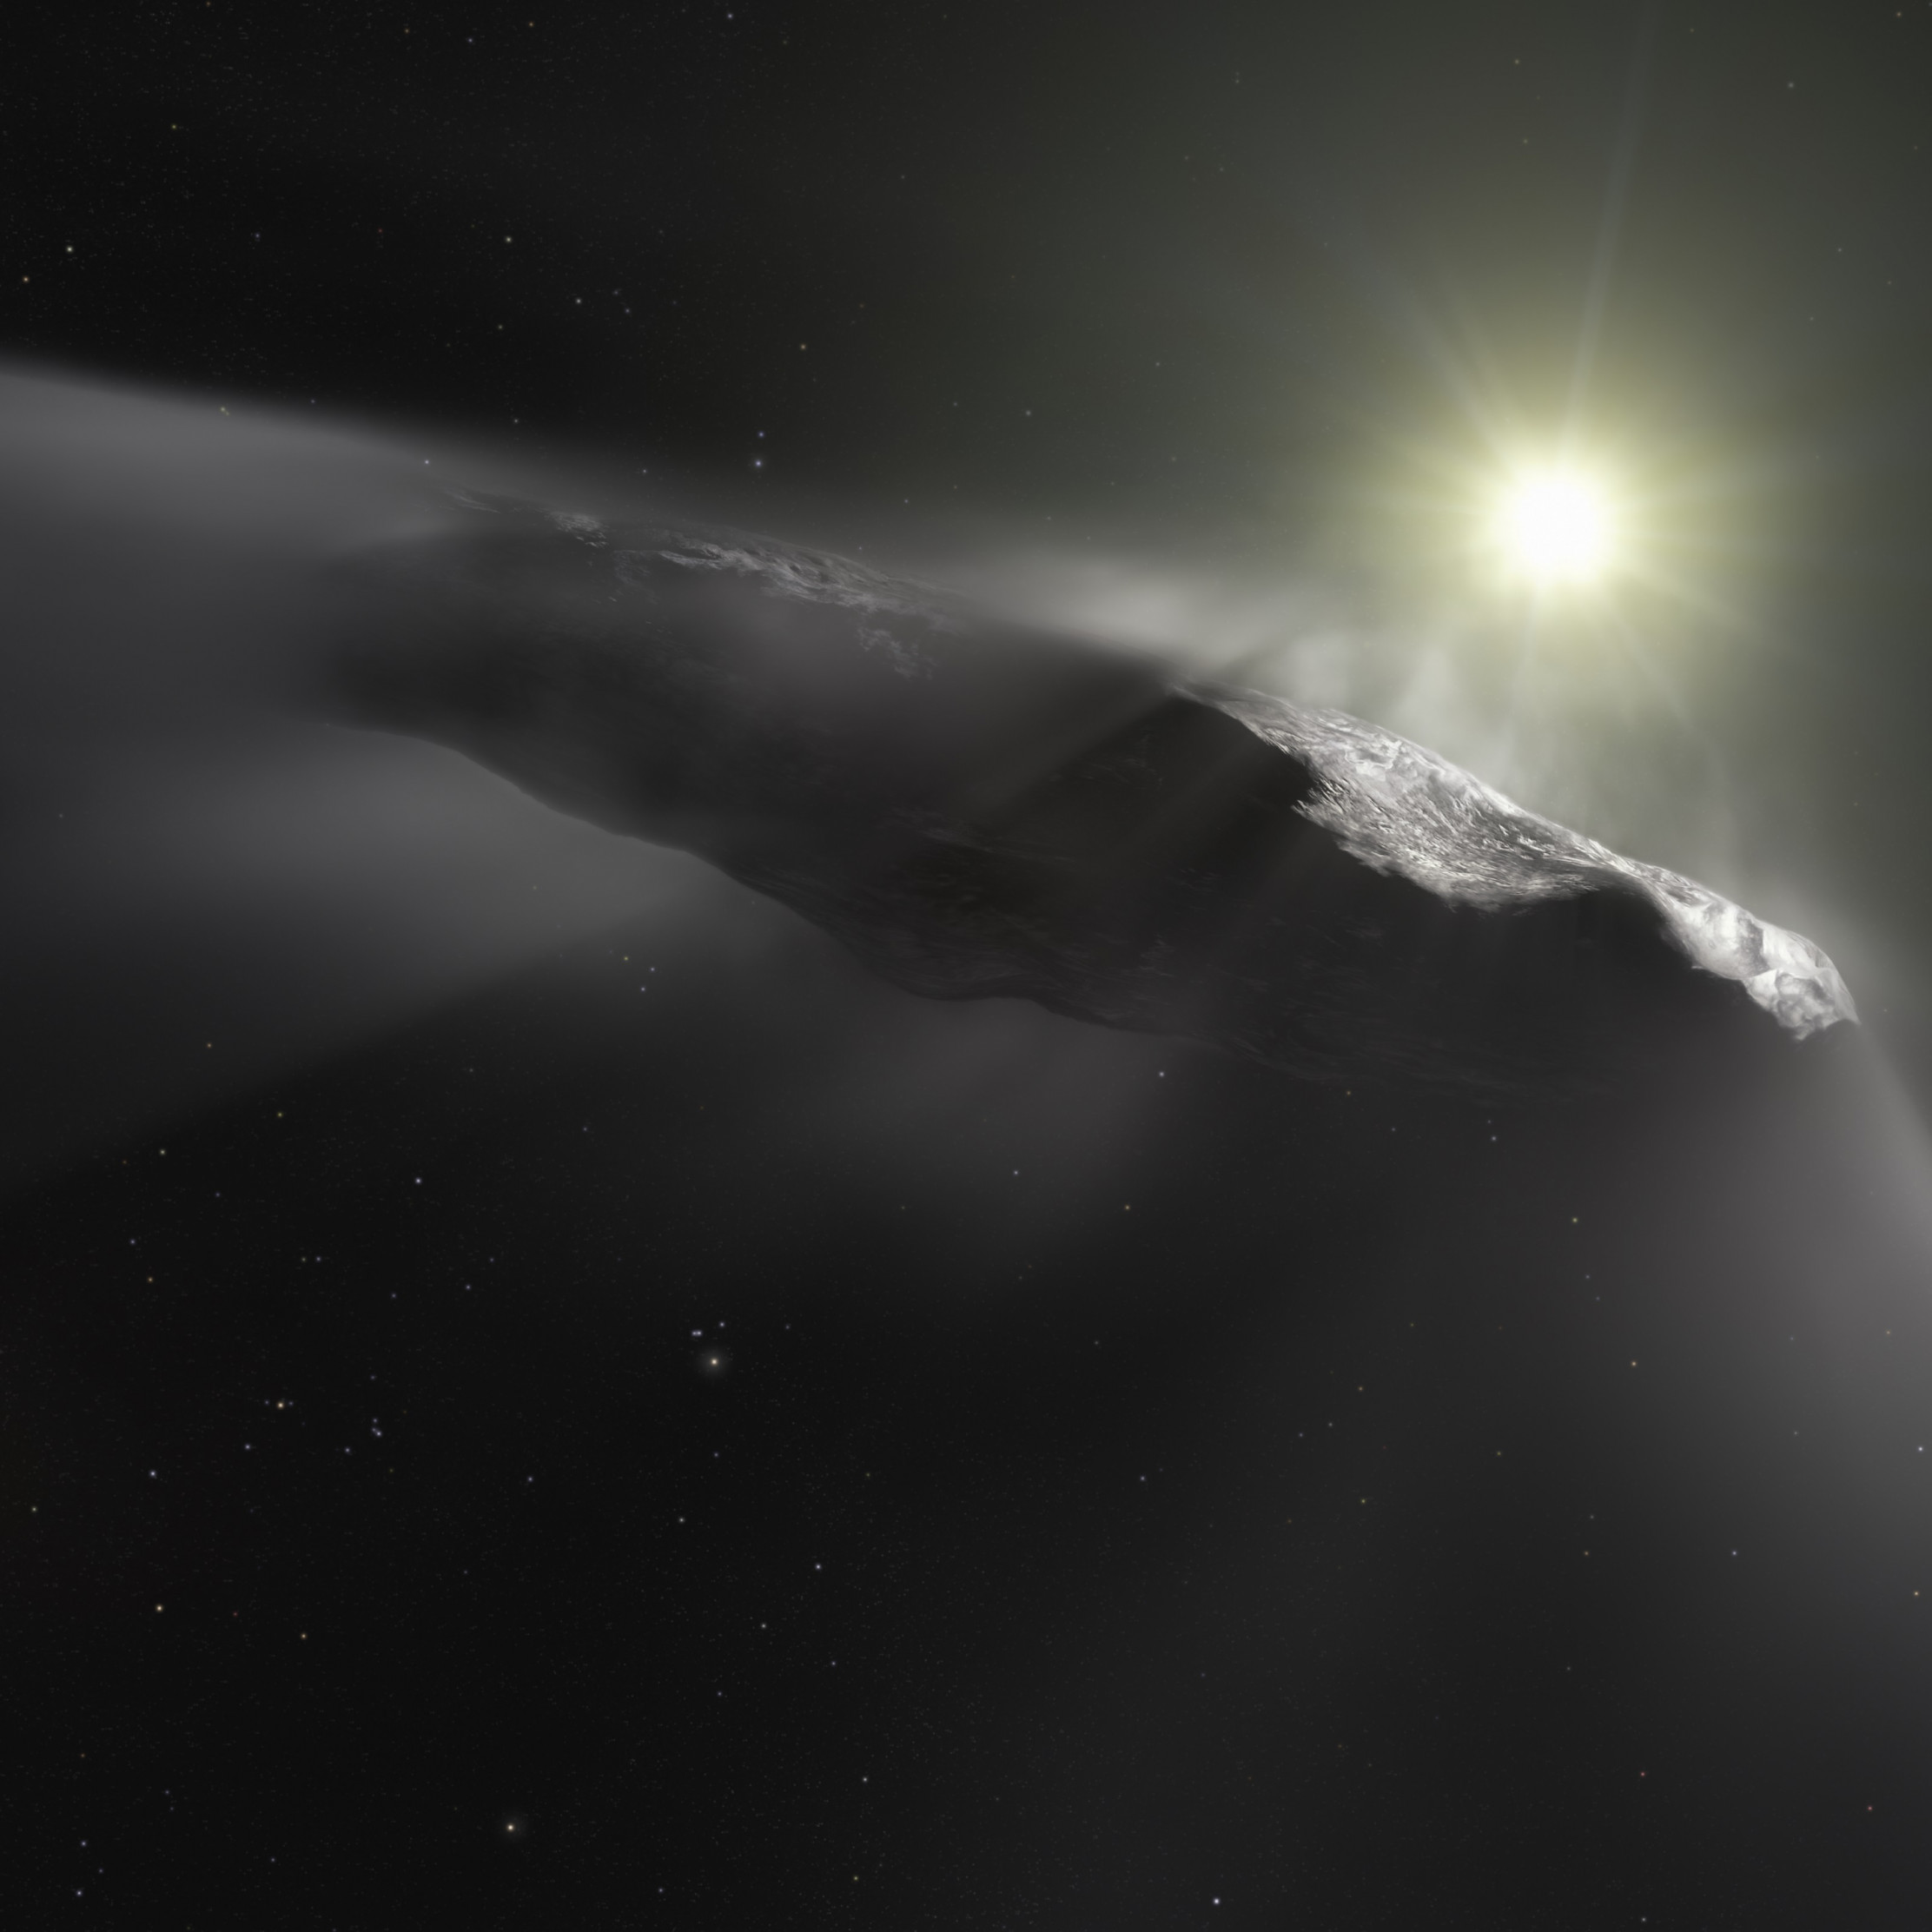 Oumuamua asteroid wallpaper 2224x2224